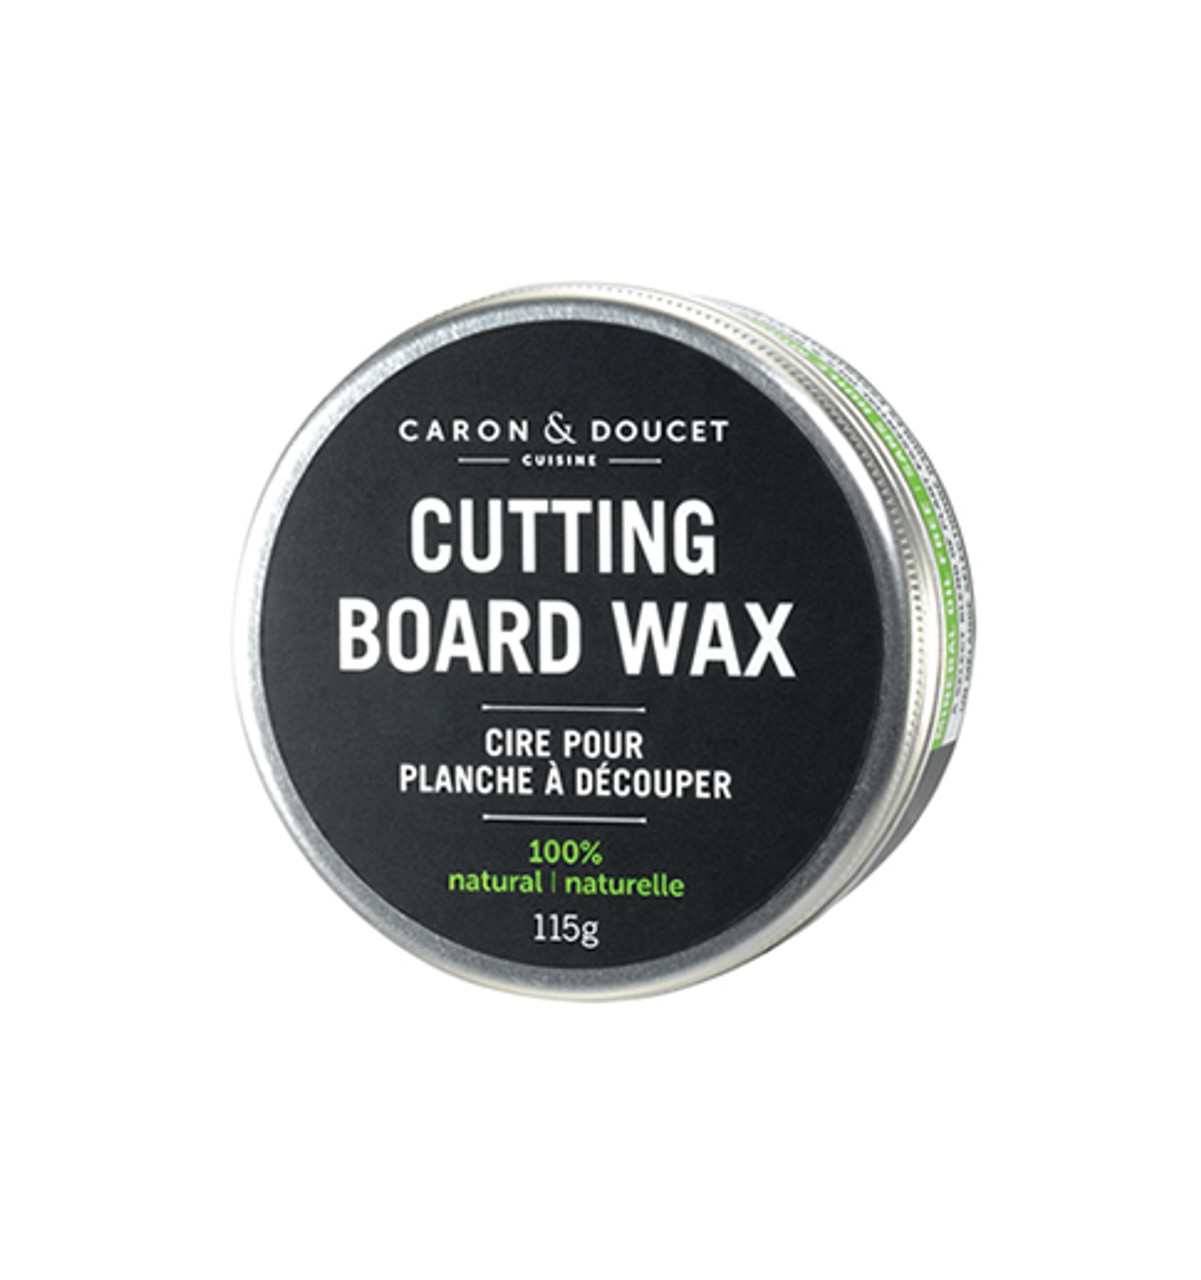 CARON & DOUCET - CUTTING BOARD WAX